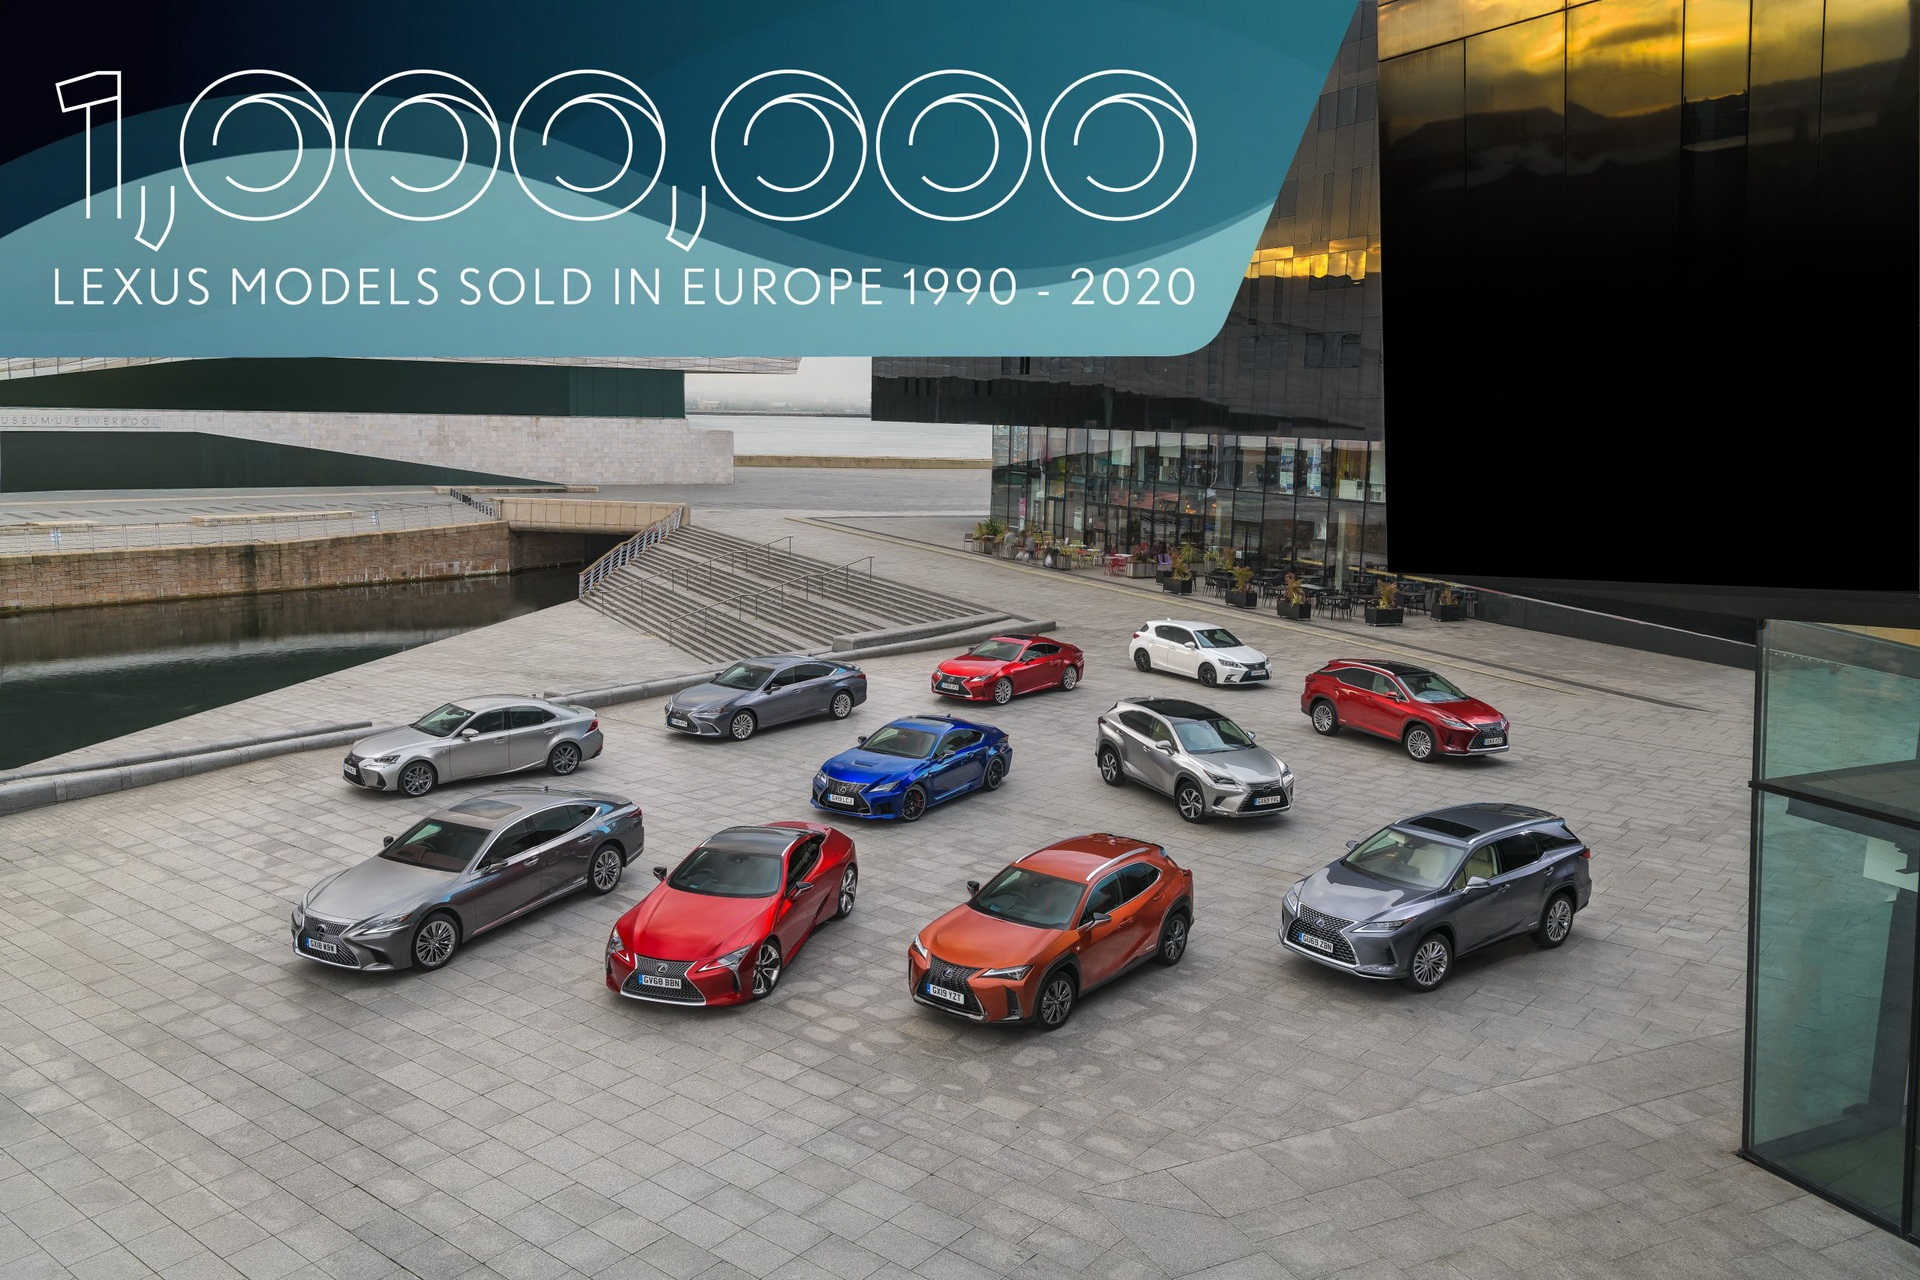 lexus-europe-sales-2020-1